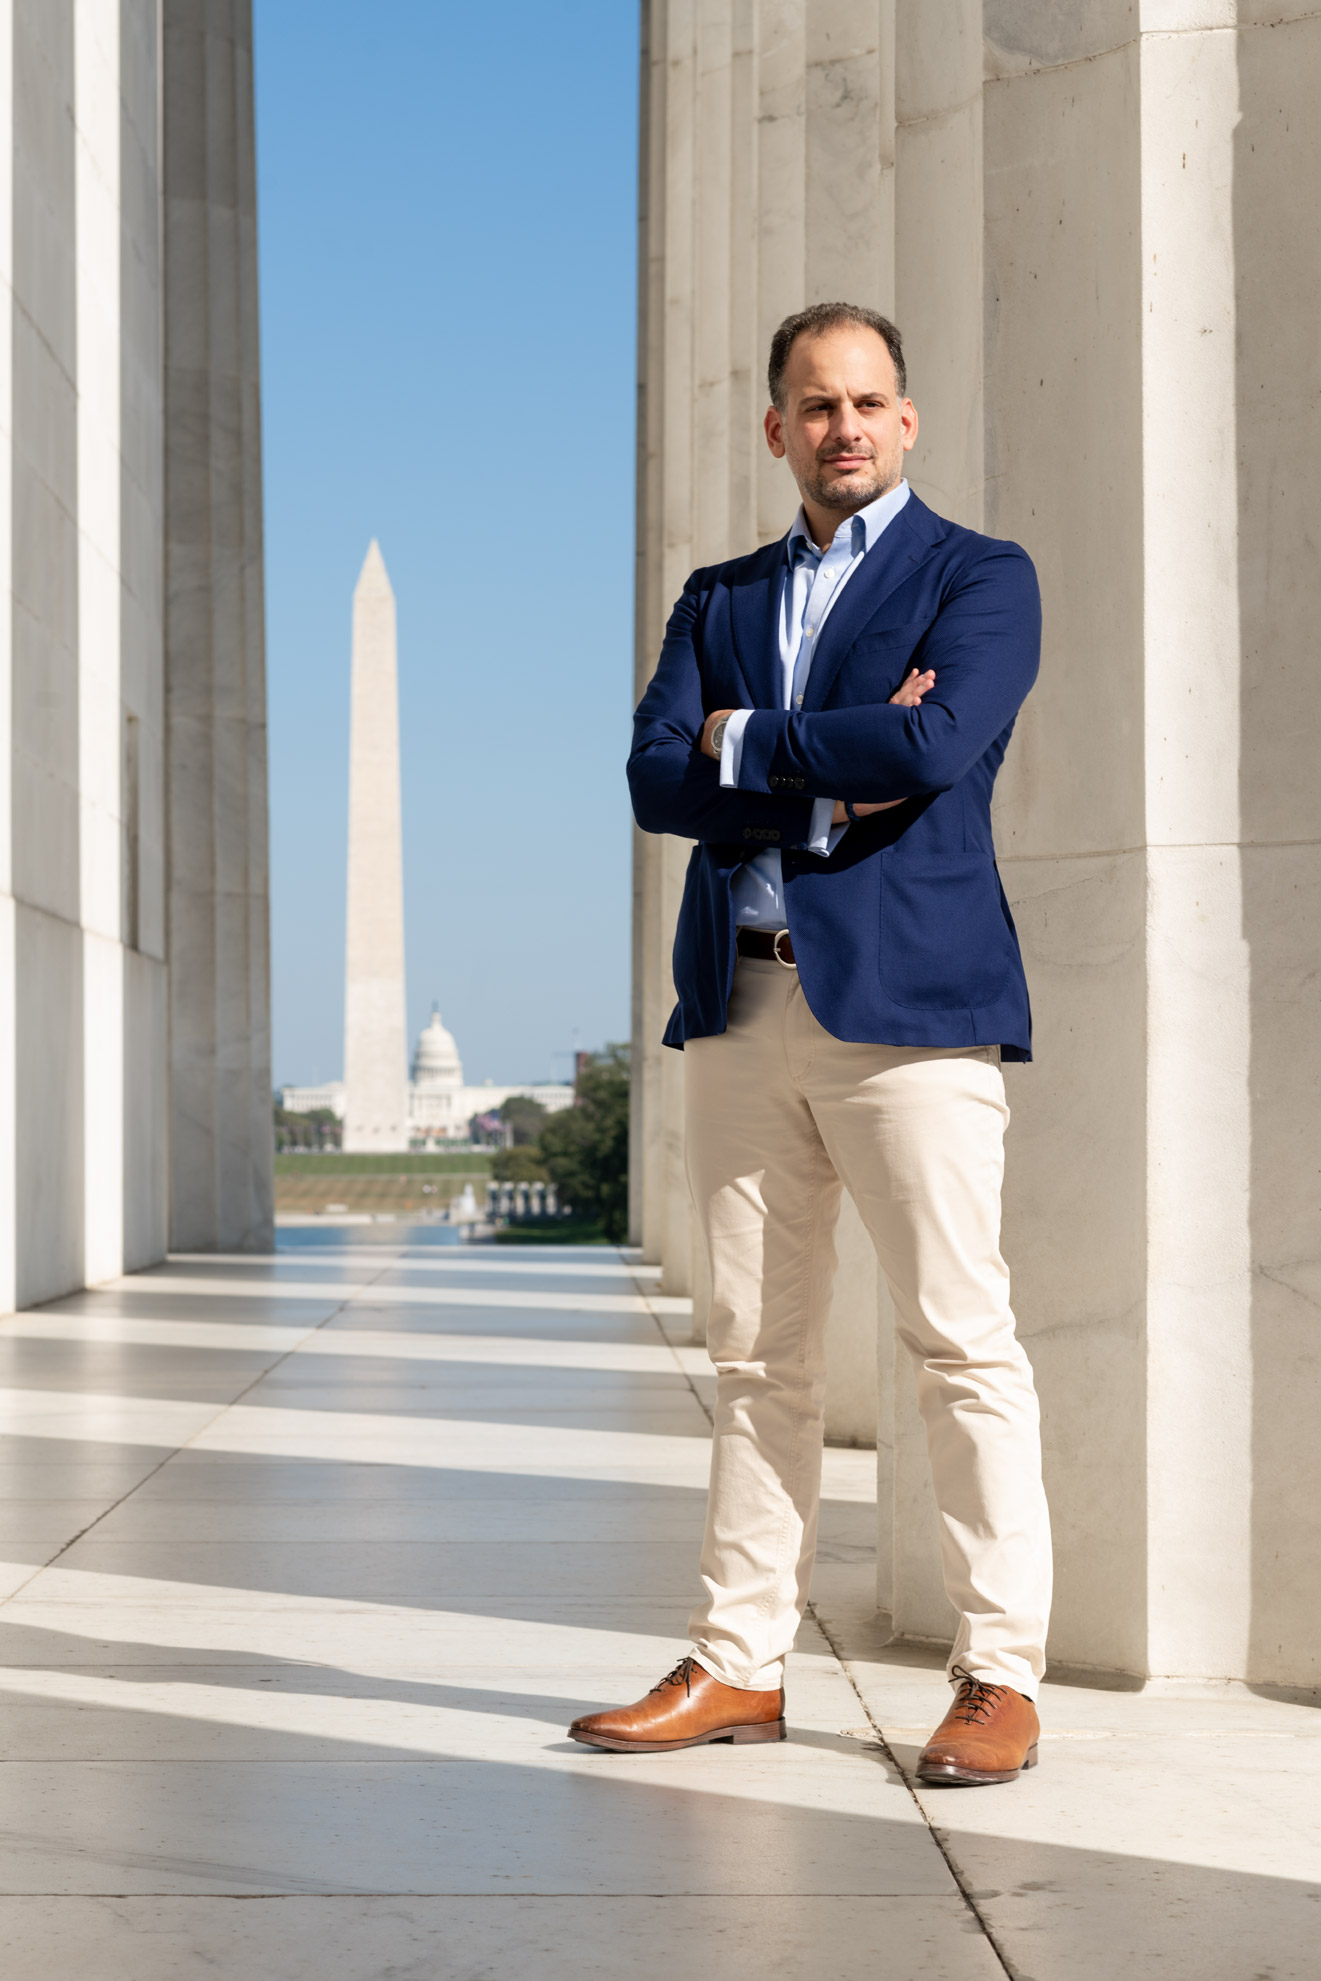 Nikolas Katsimpras, photographed 7 October 2020, in Washington DC.